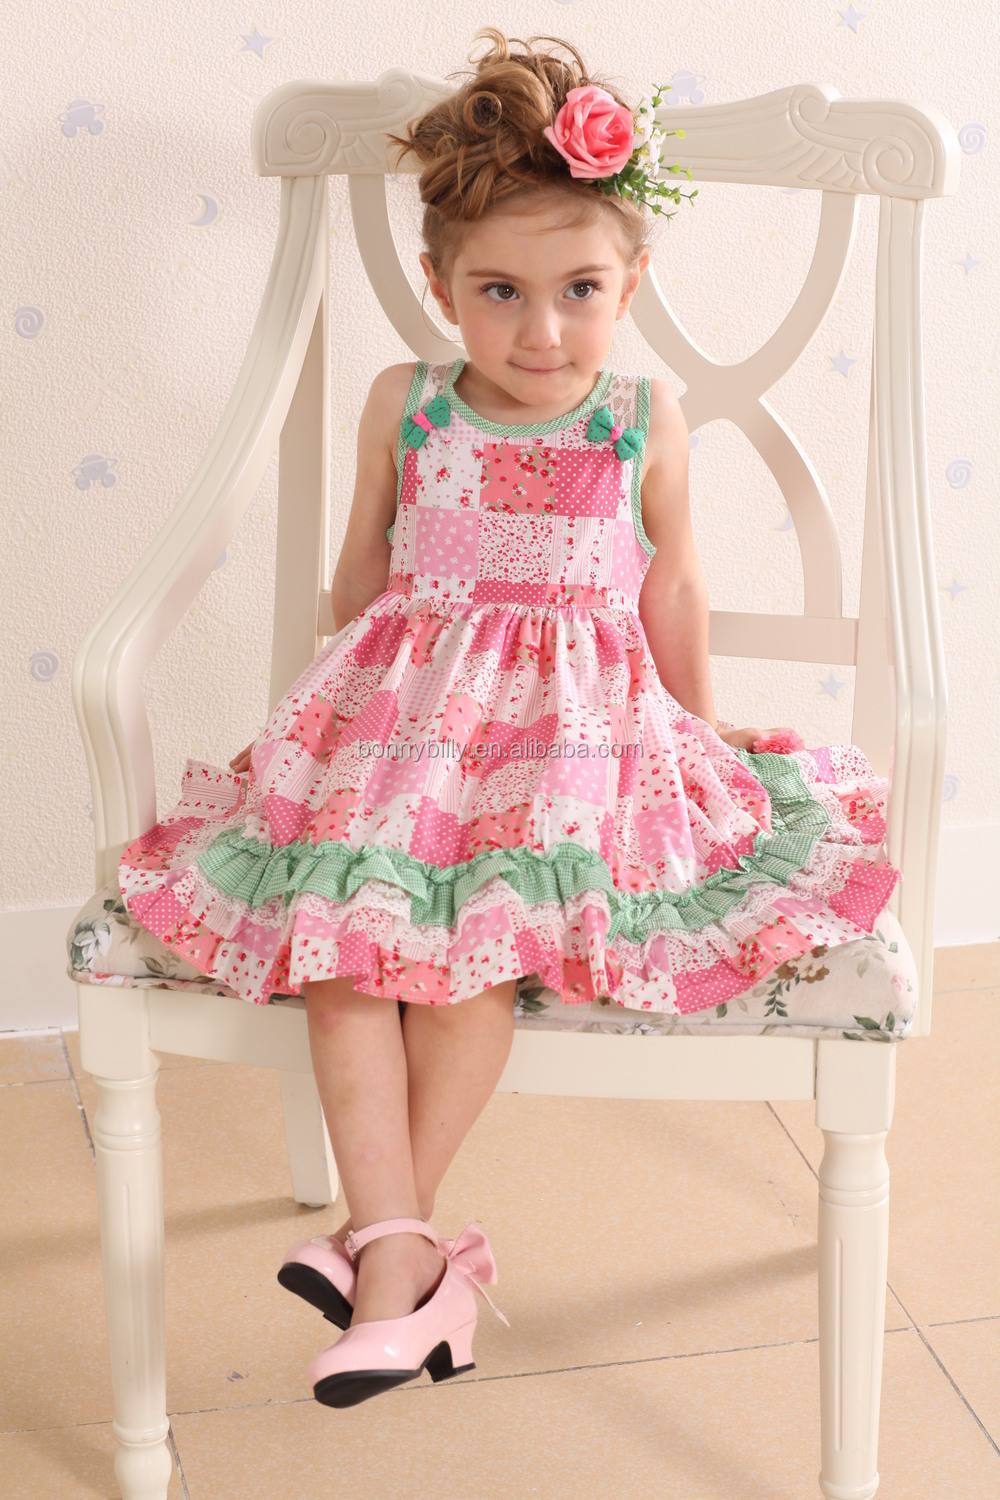 0f89efea2 100% cotton dresses for little girls